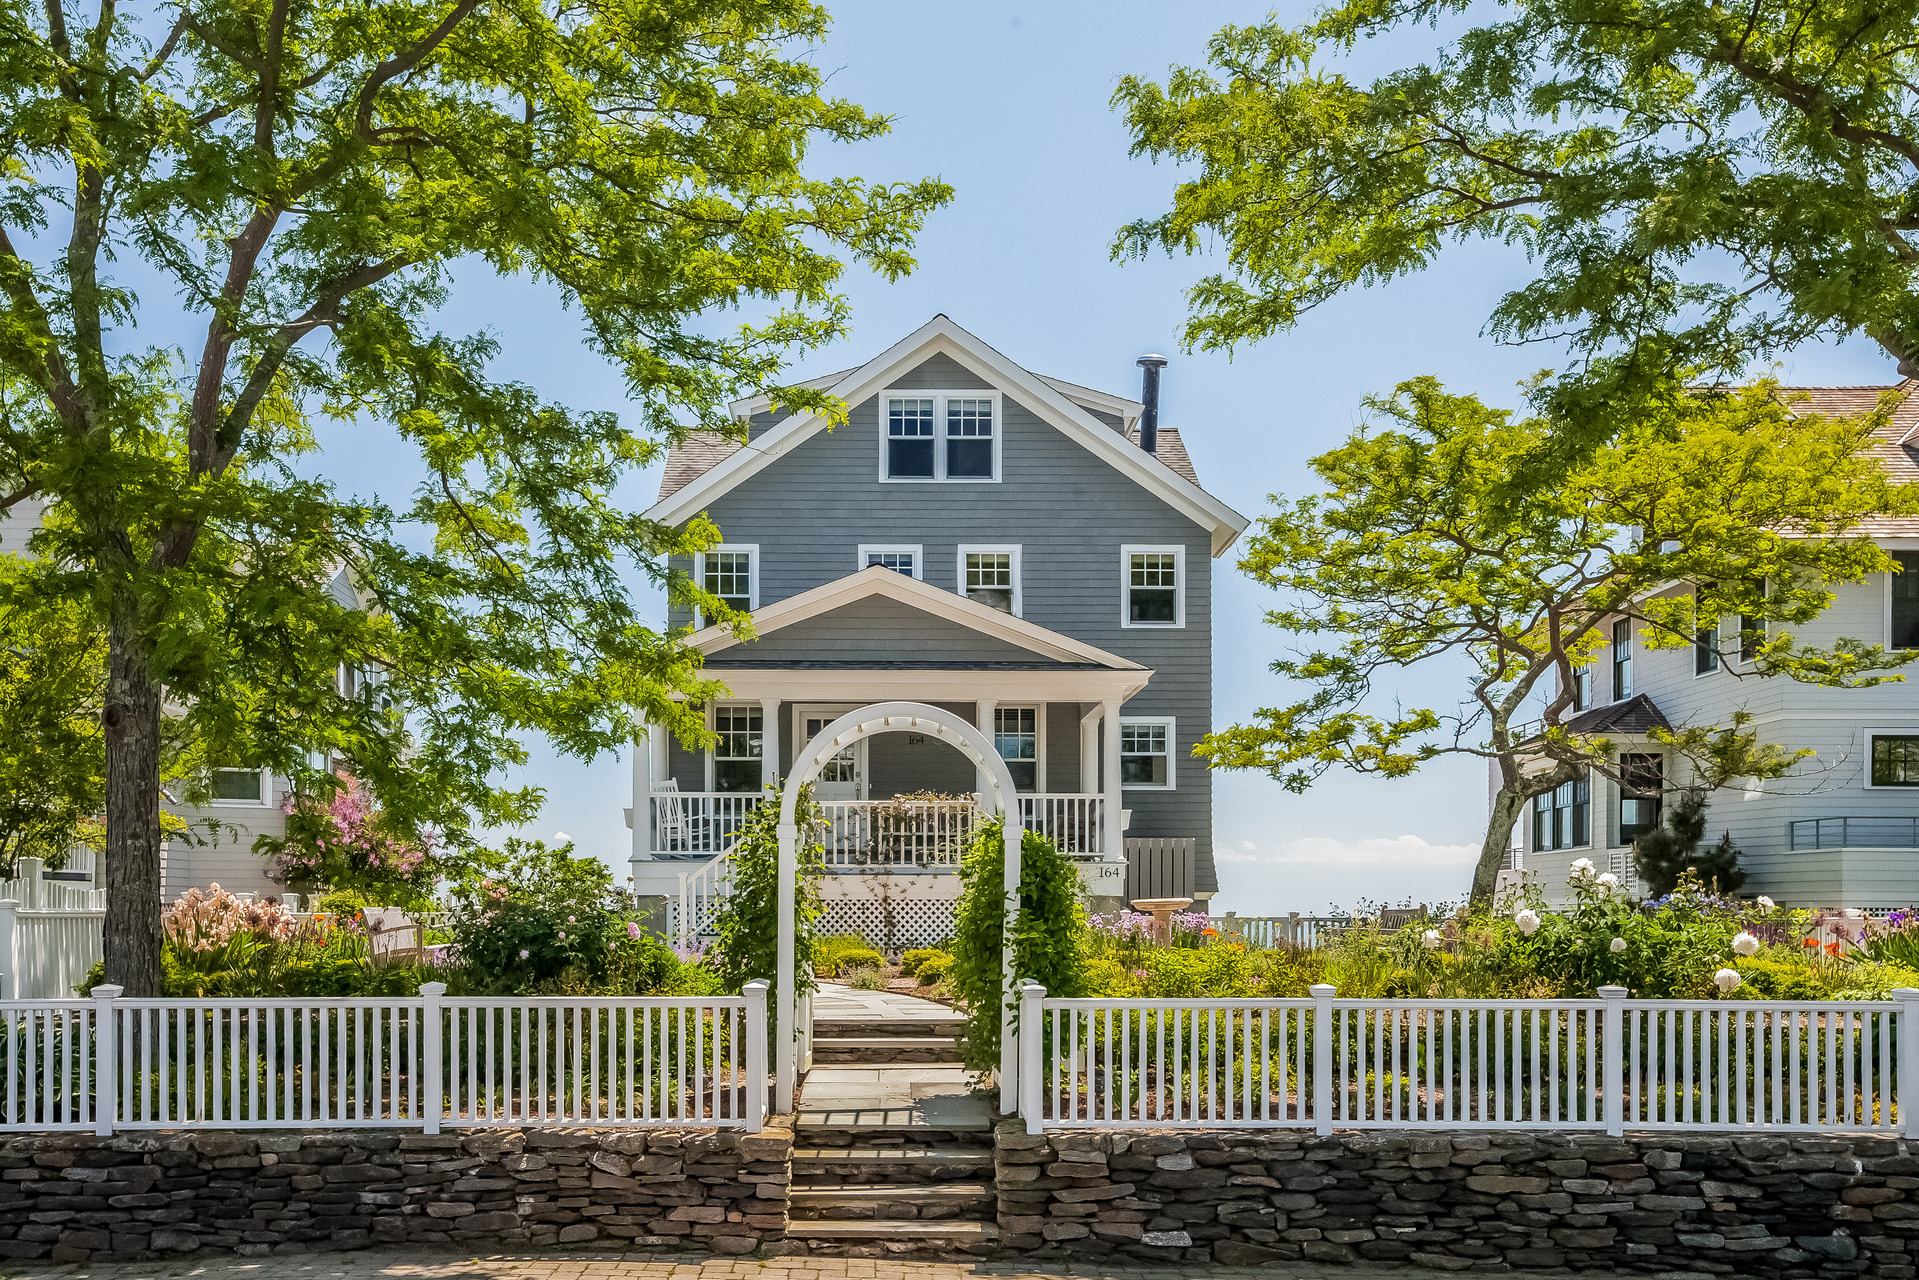 Single Family Home for Sale at 163/164 Middle Beach Rd Madison, Connecticut 06443 United States